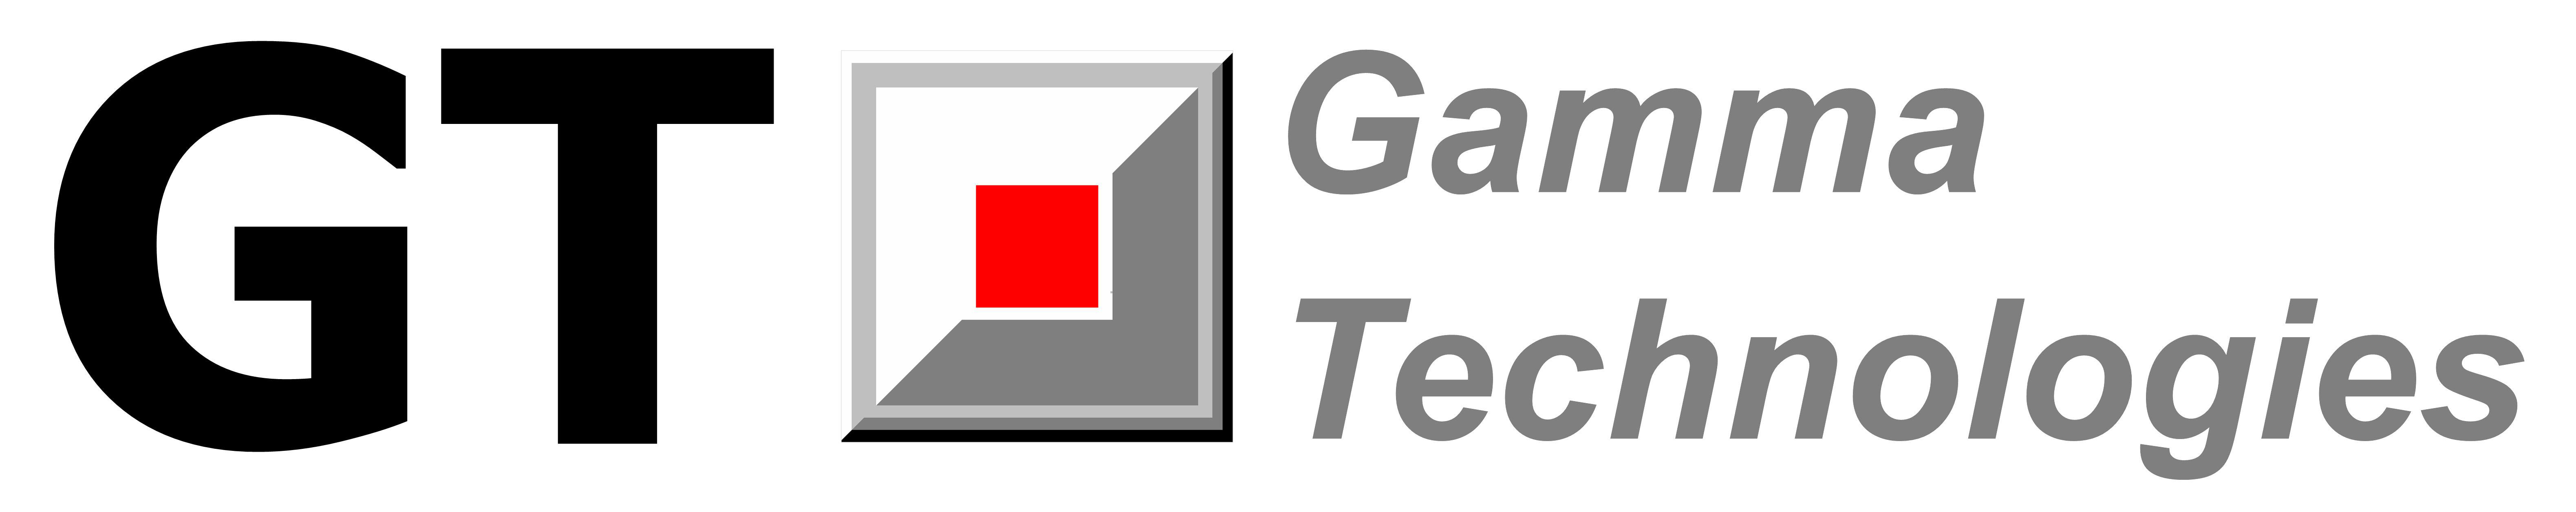 Gamma Technologies Inc. 様